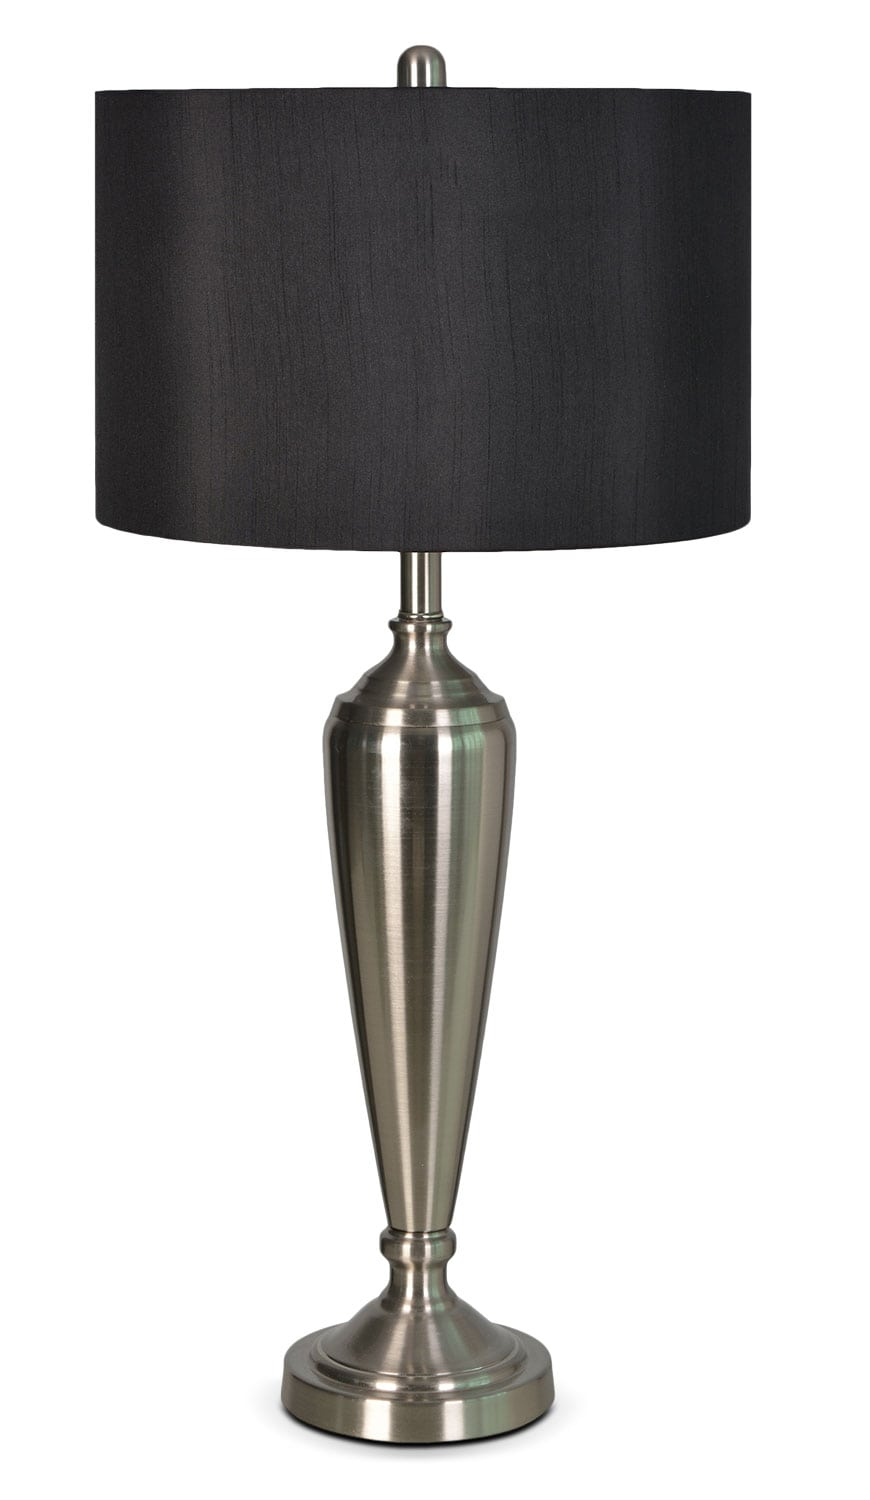 "Eloise 30"" Table Lamp - Metal"